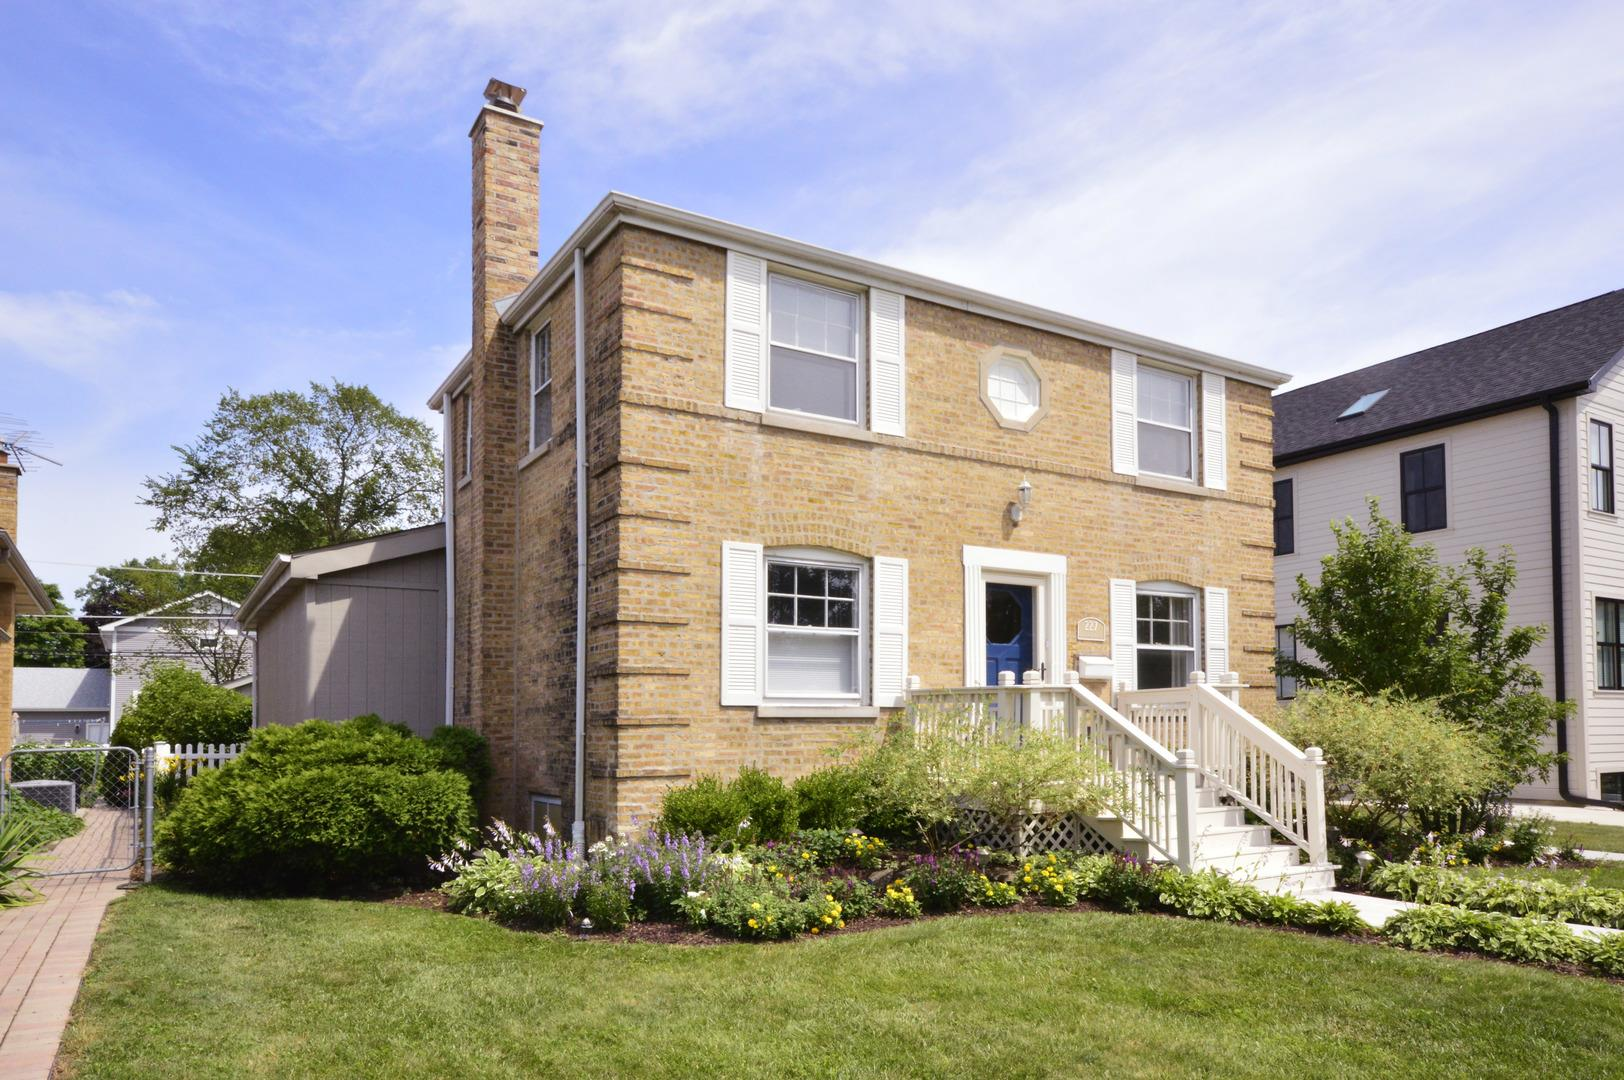 227 N Greenwood Avenue, Park Ridge, IL 60068 - #: 10829802